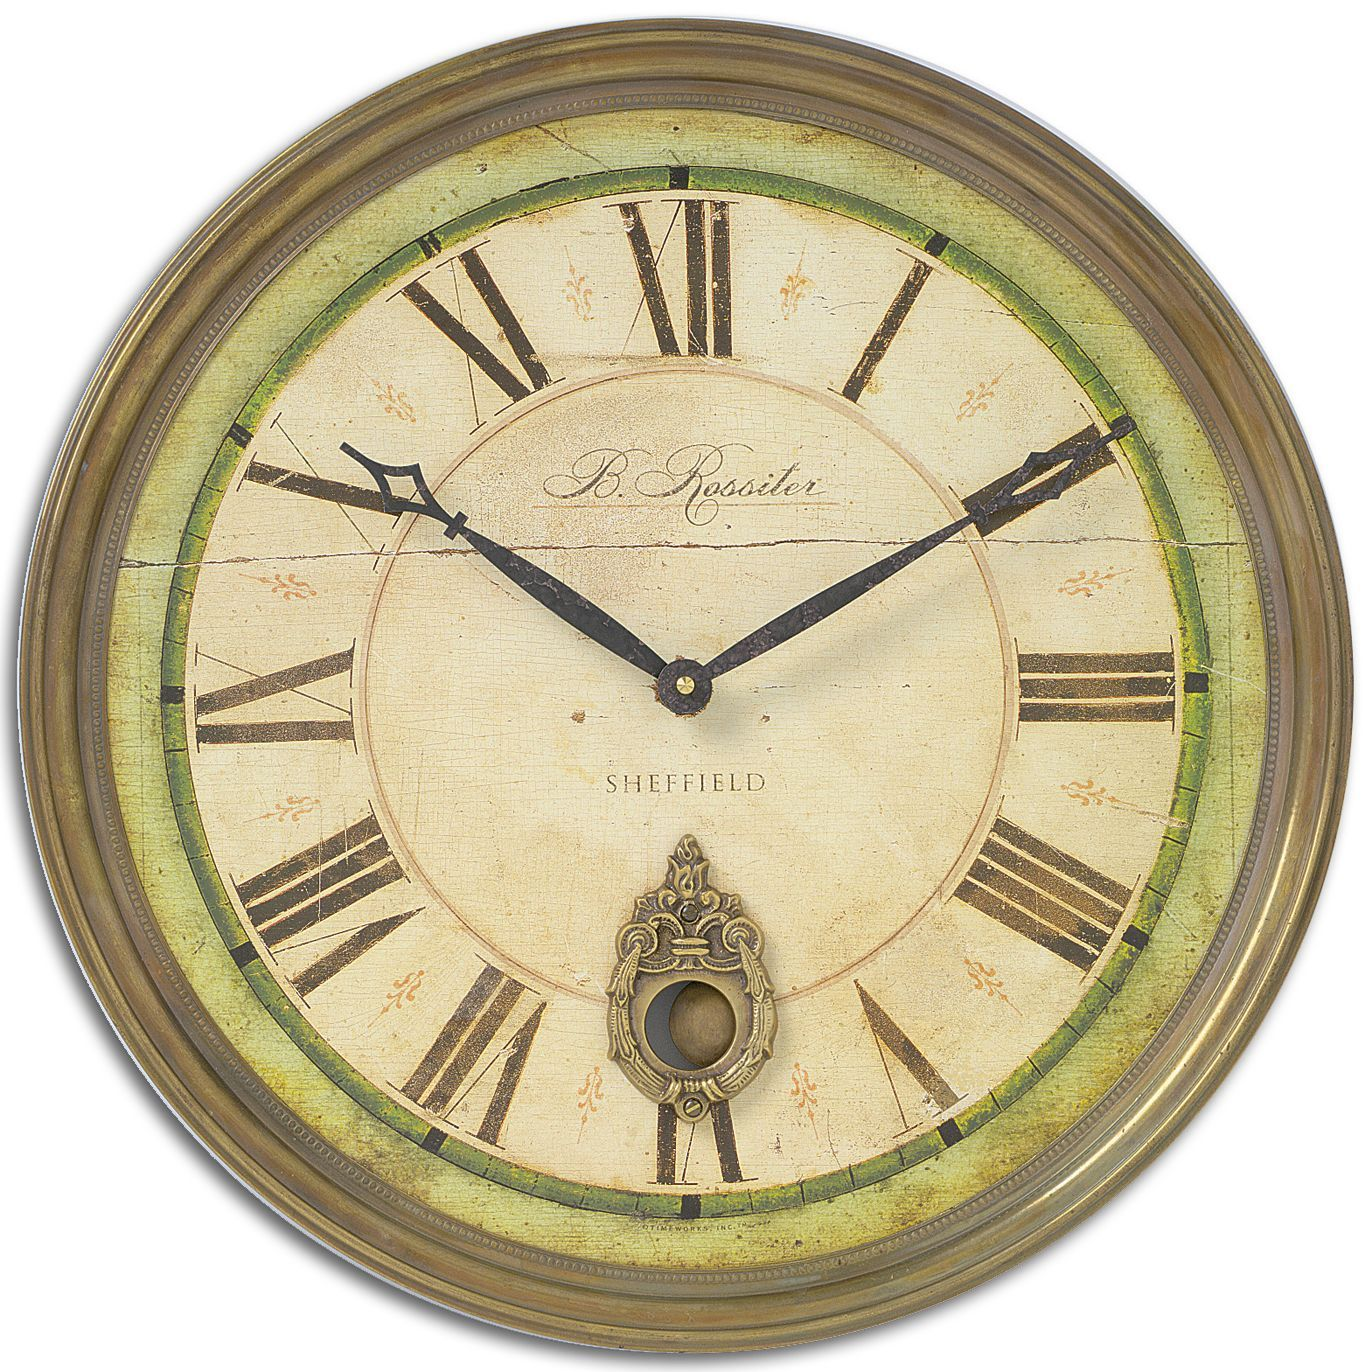 Uttermost Regency \'B. Rossiter\' Weathered Wall Clock (Regency B ...